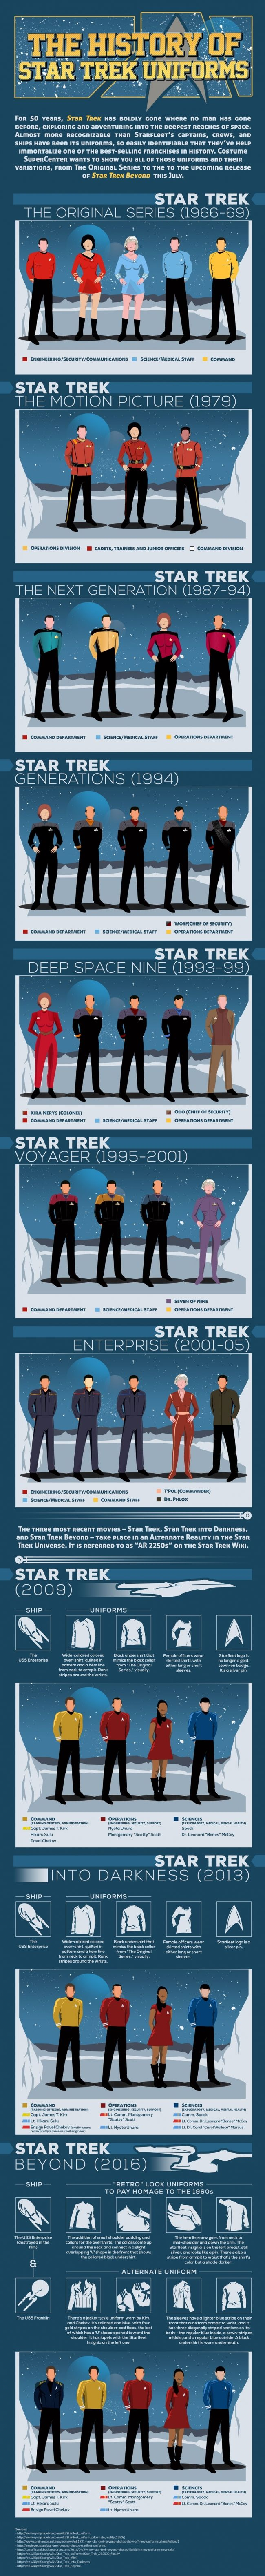 http://www.blameitonthevoices.com/2016/07/infographic-history-of-star-trek.html